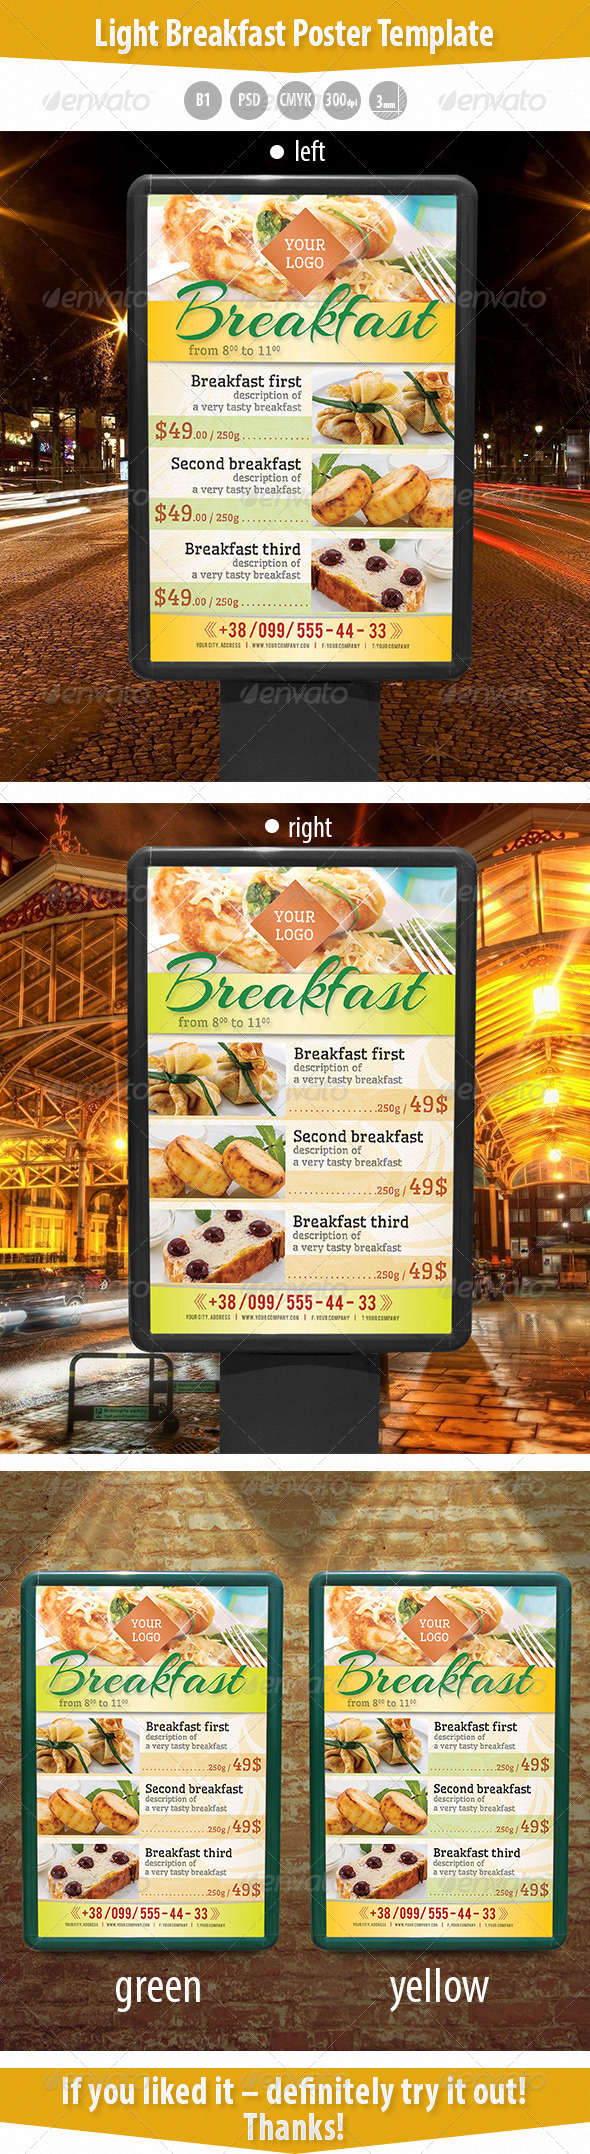 GraphicRiver Light Breakfast Poster Template 8654490